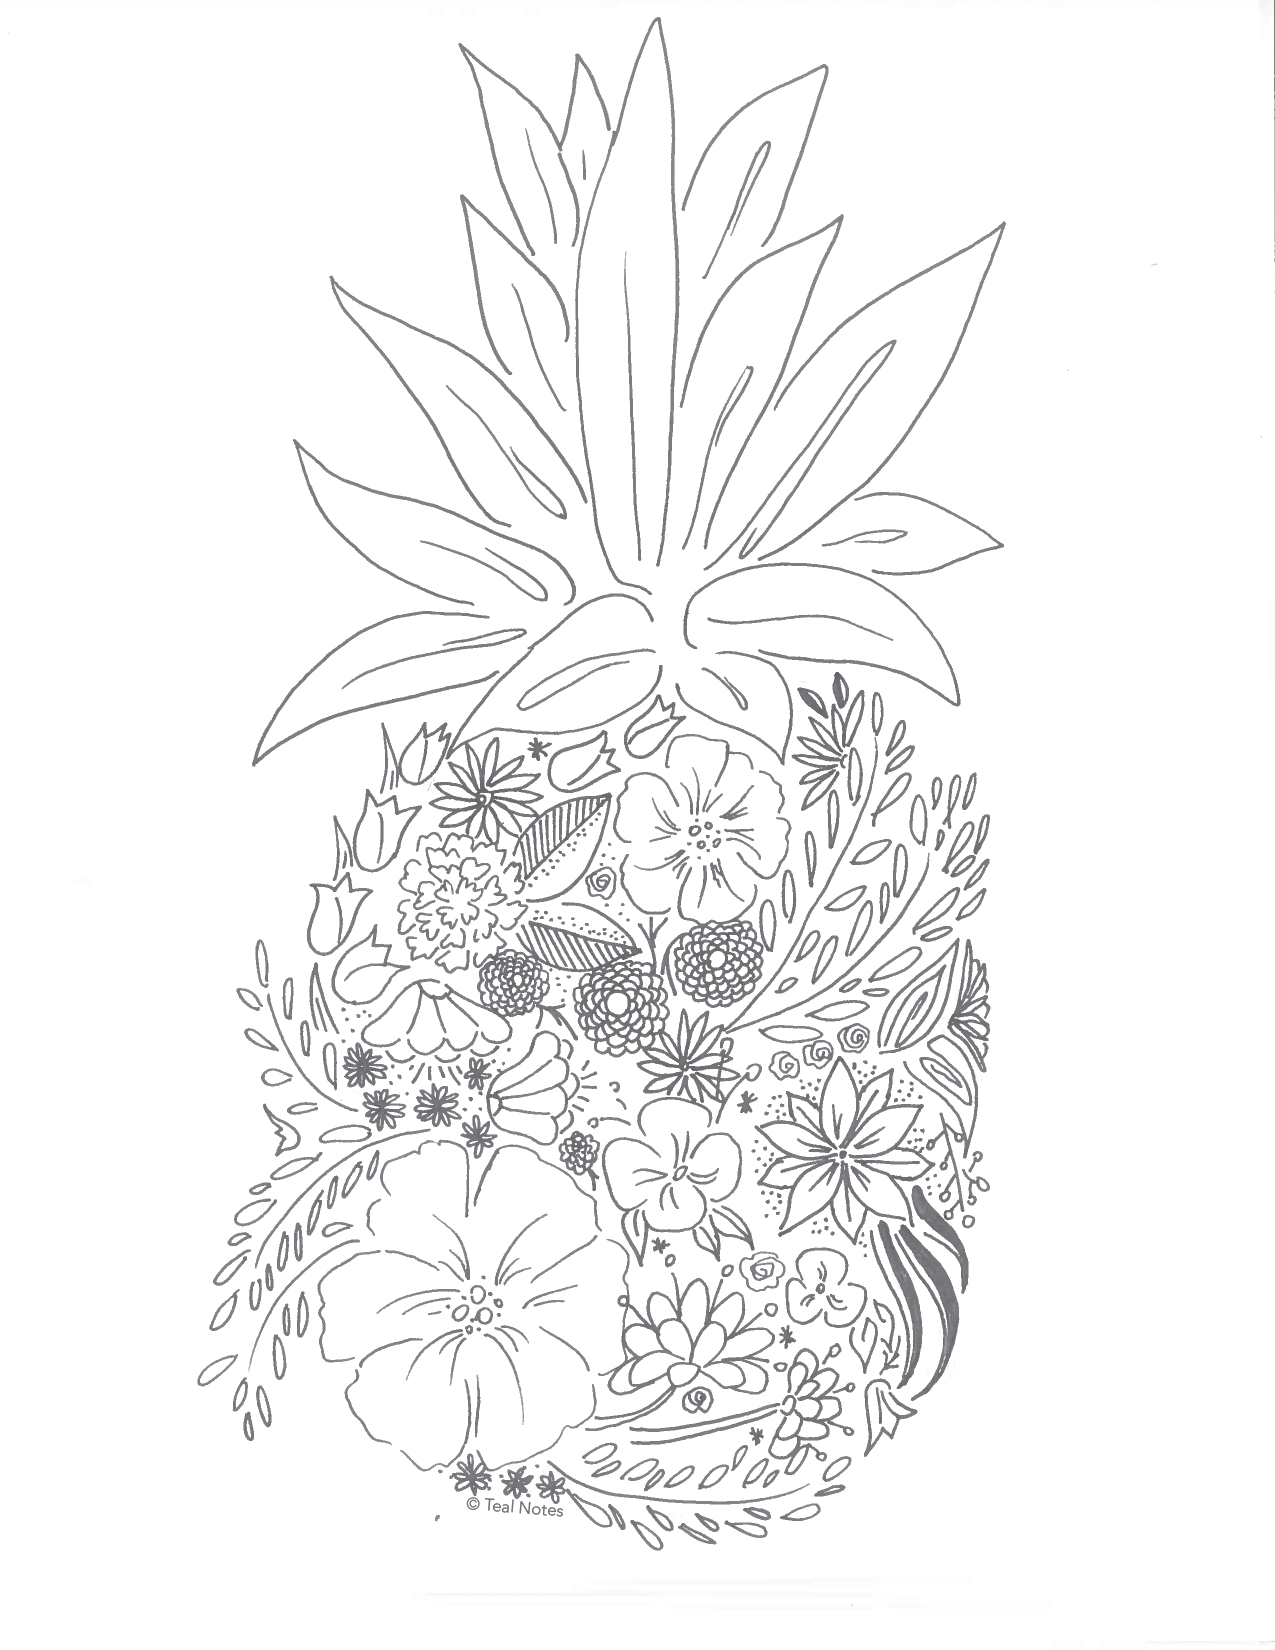 Pineapple Coloring Page by Teal Notes